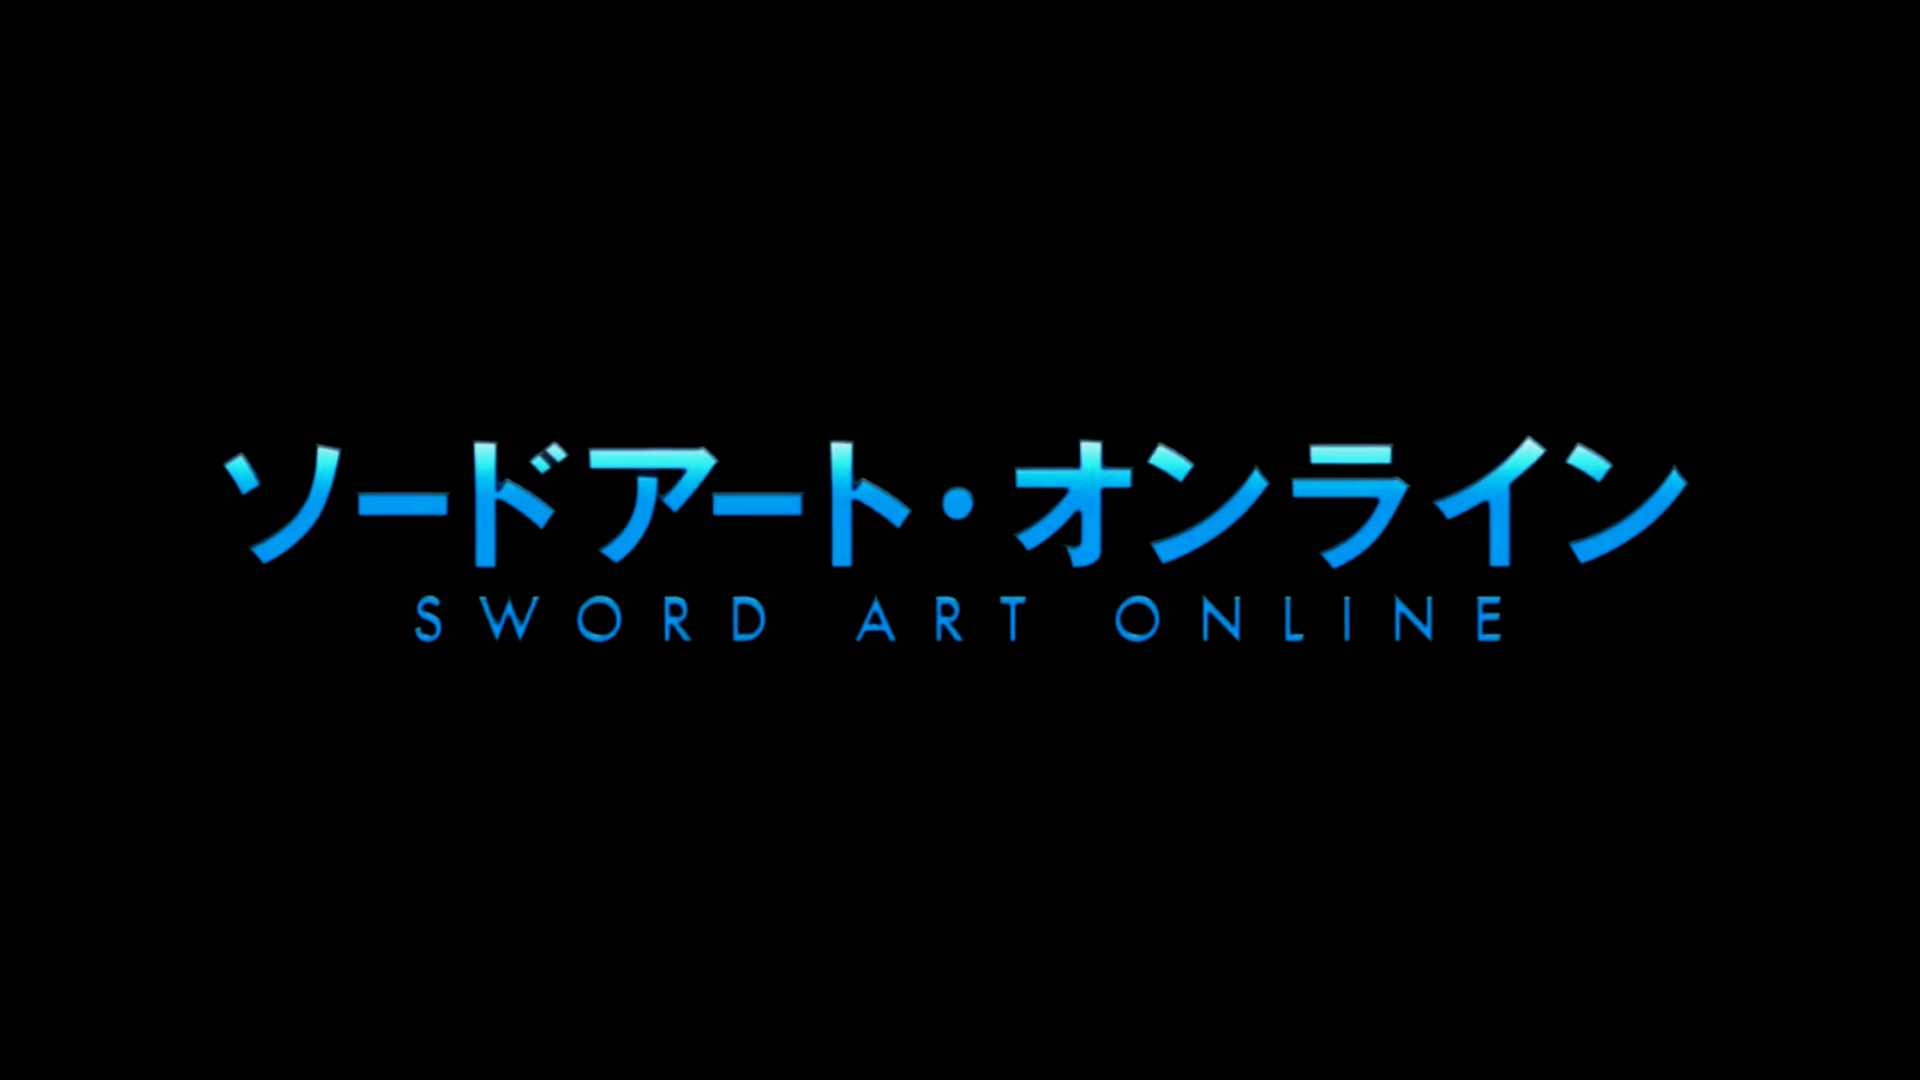 Sword Art Online wallpaper 43